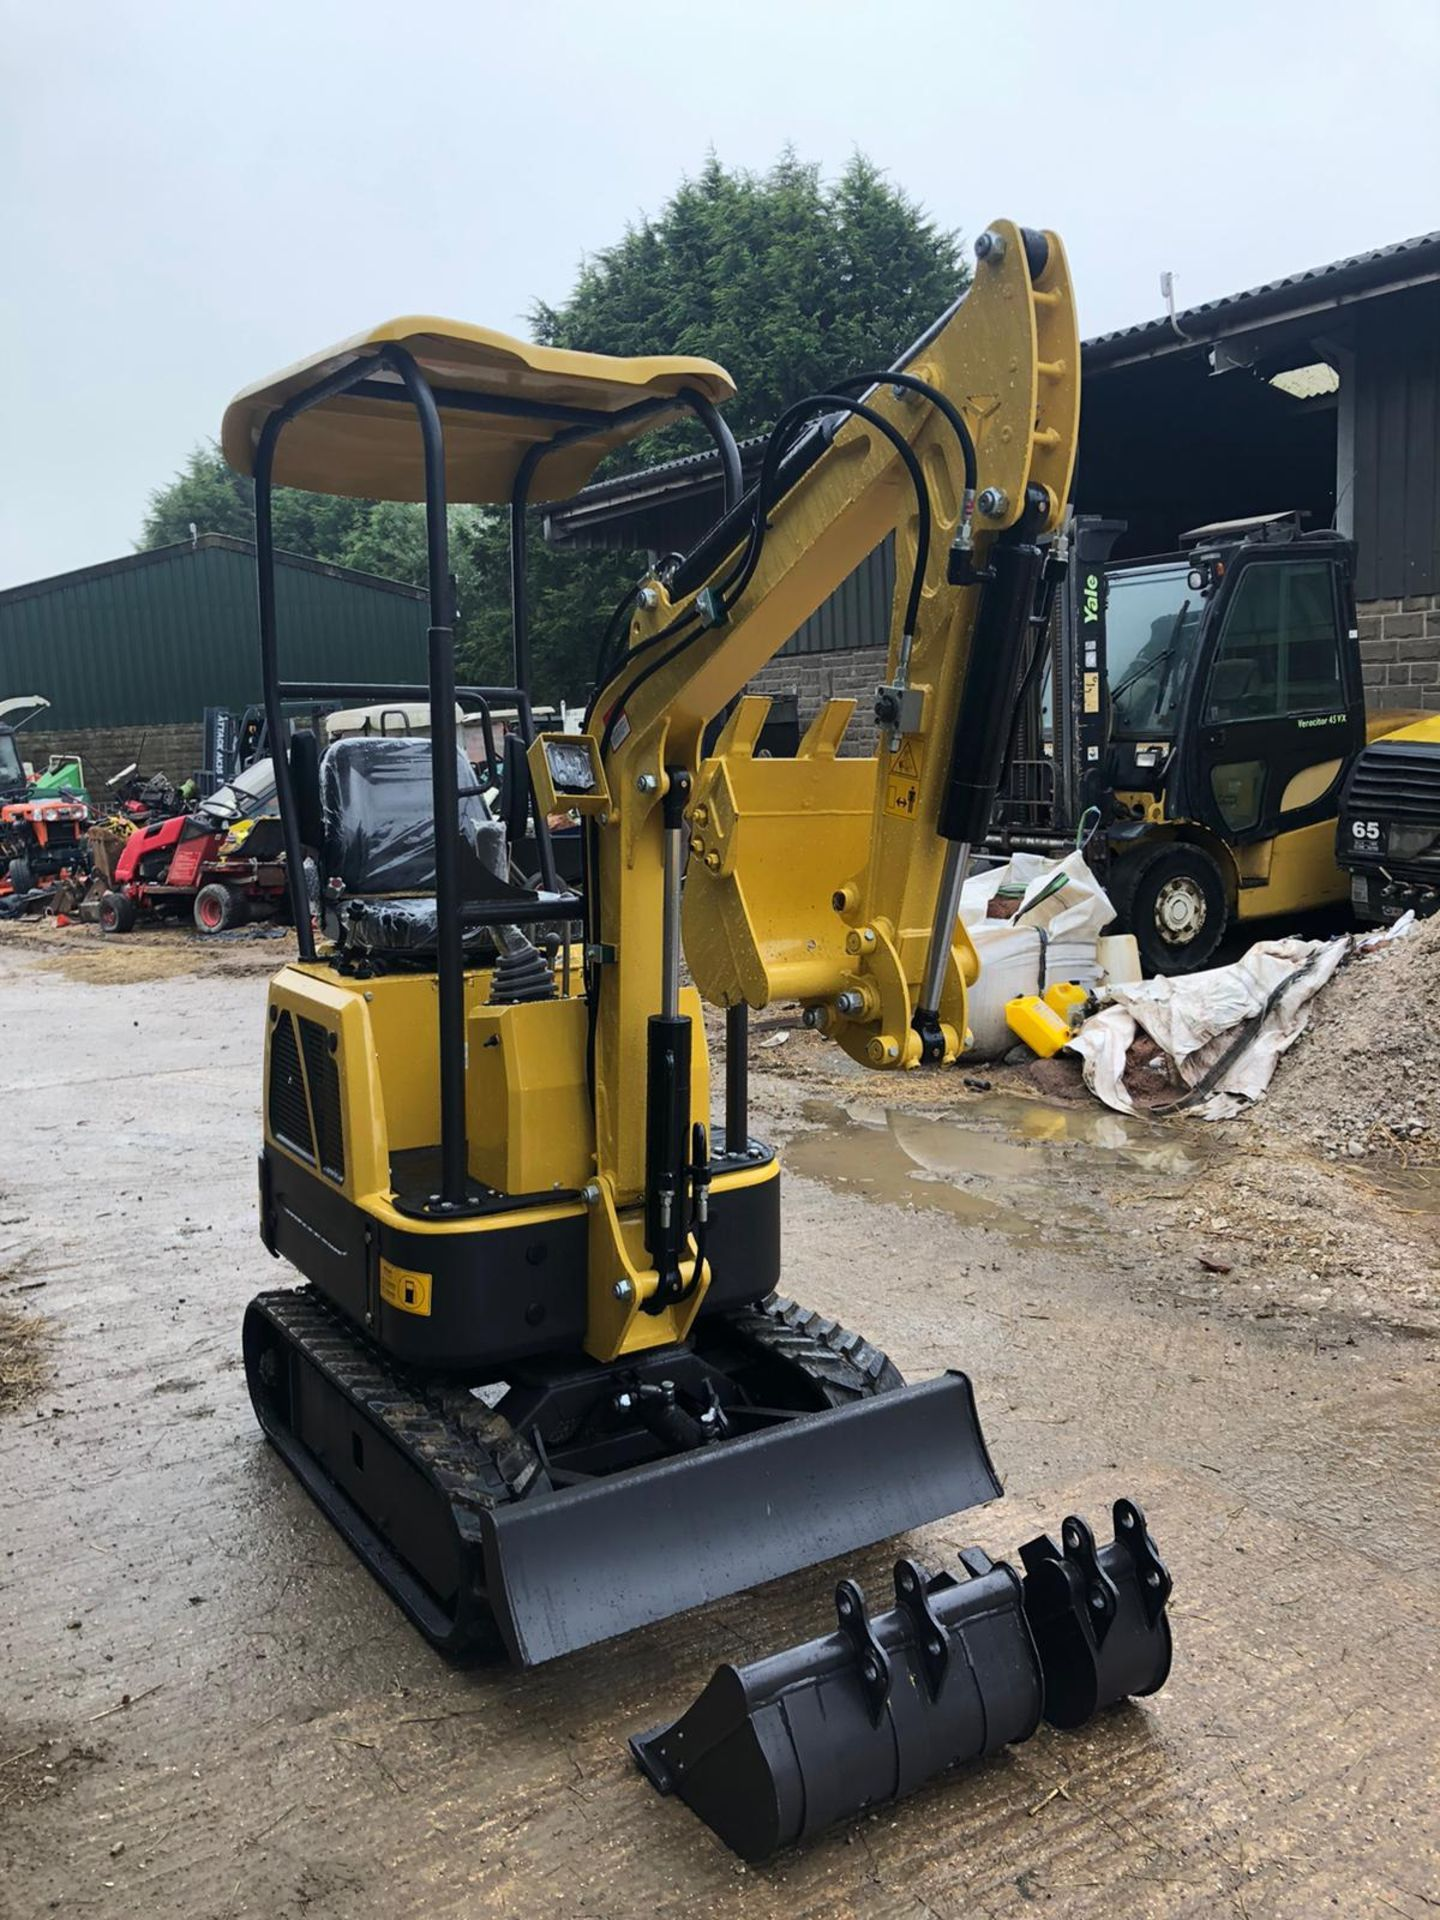 2020 RHINOCEROS XN08 EXCAVATOR RUBBER TRACKS, CANOPY, 3 X BUCKETS, RUNS, DRIVES AND DIGS *PLUS VAT* - Image 3 of 5